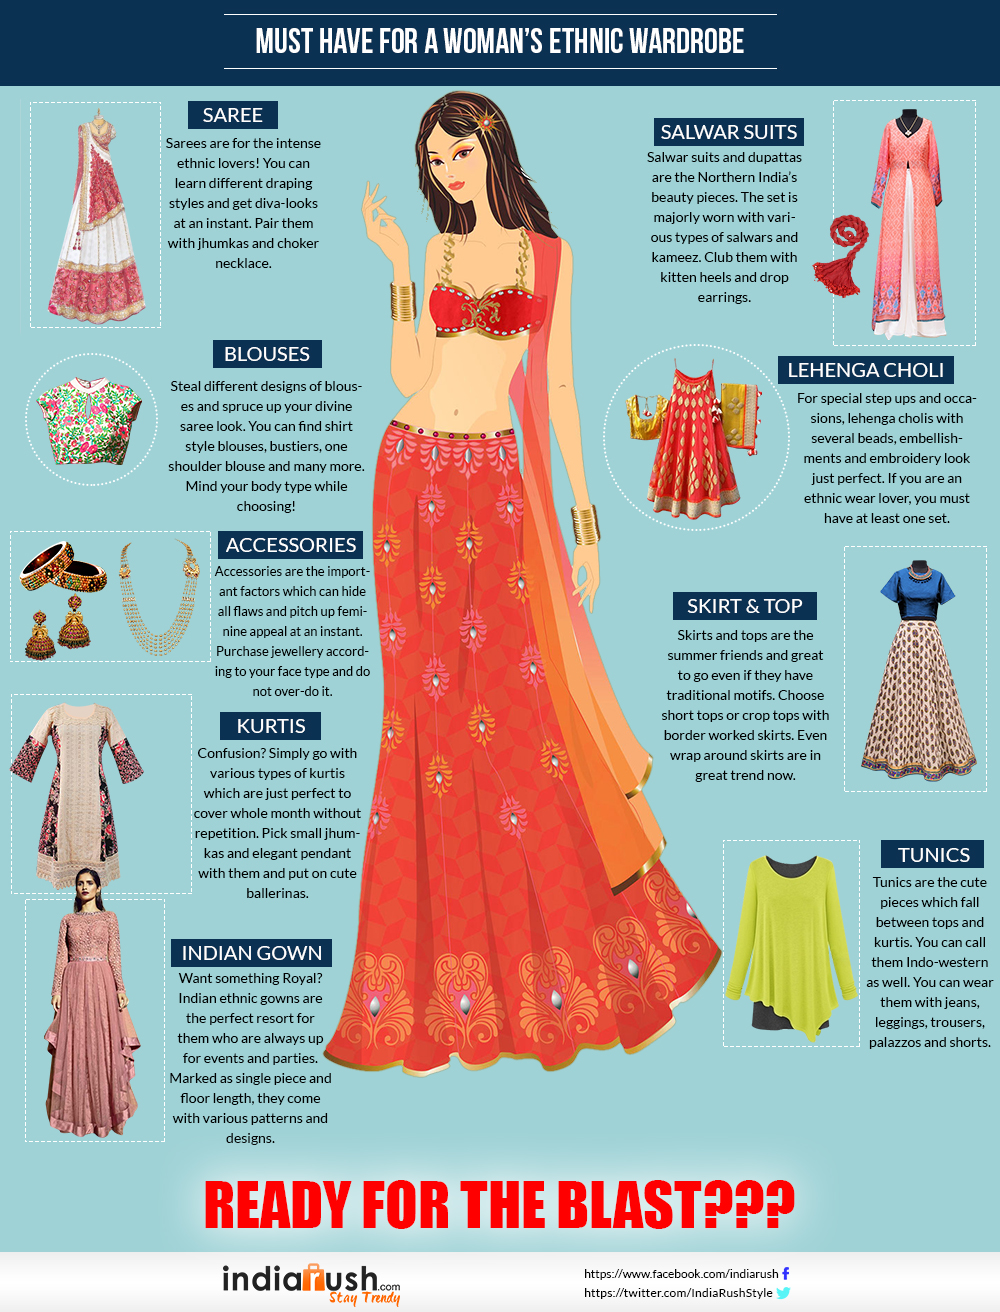 517cb2cfba Must Have Essentials for a Woman's Ethnic Wardrobe - Beauty and Blush